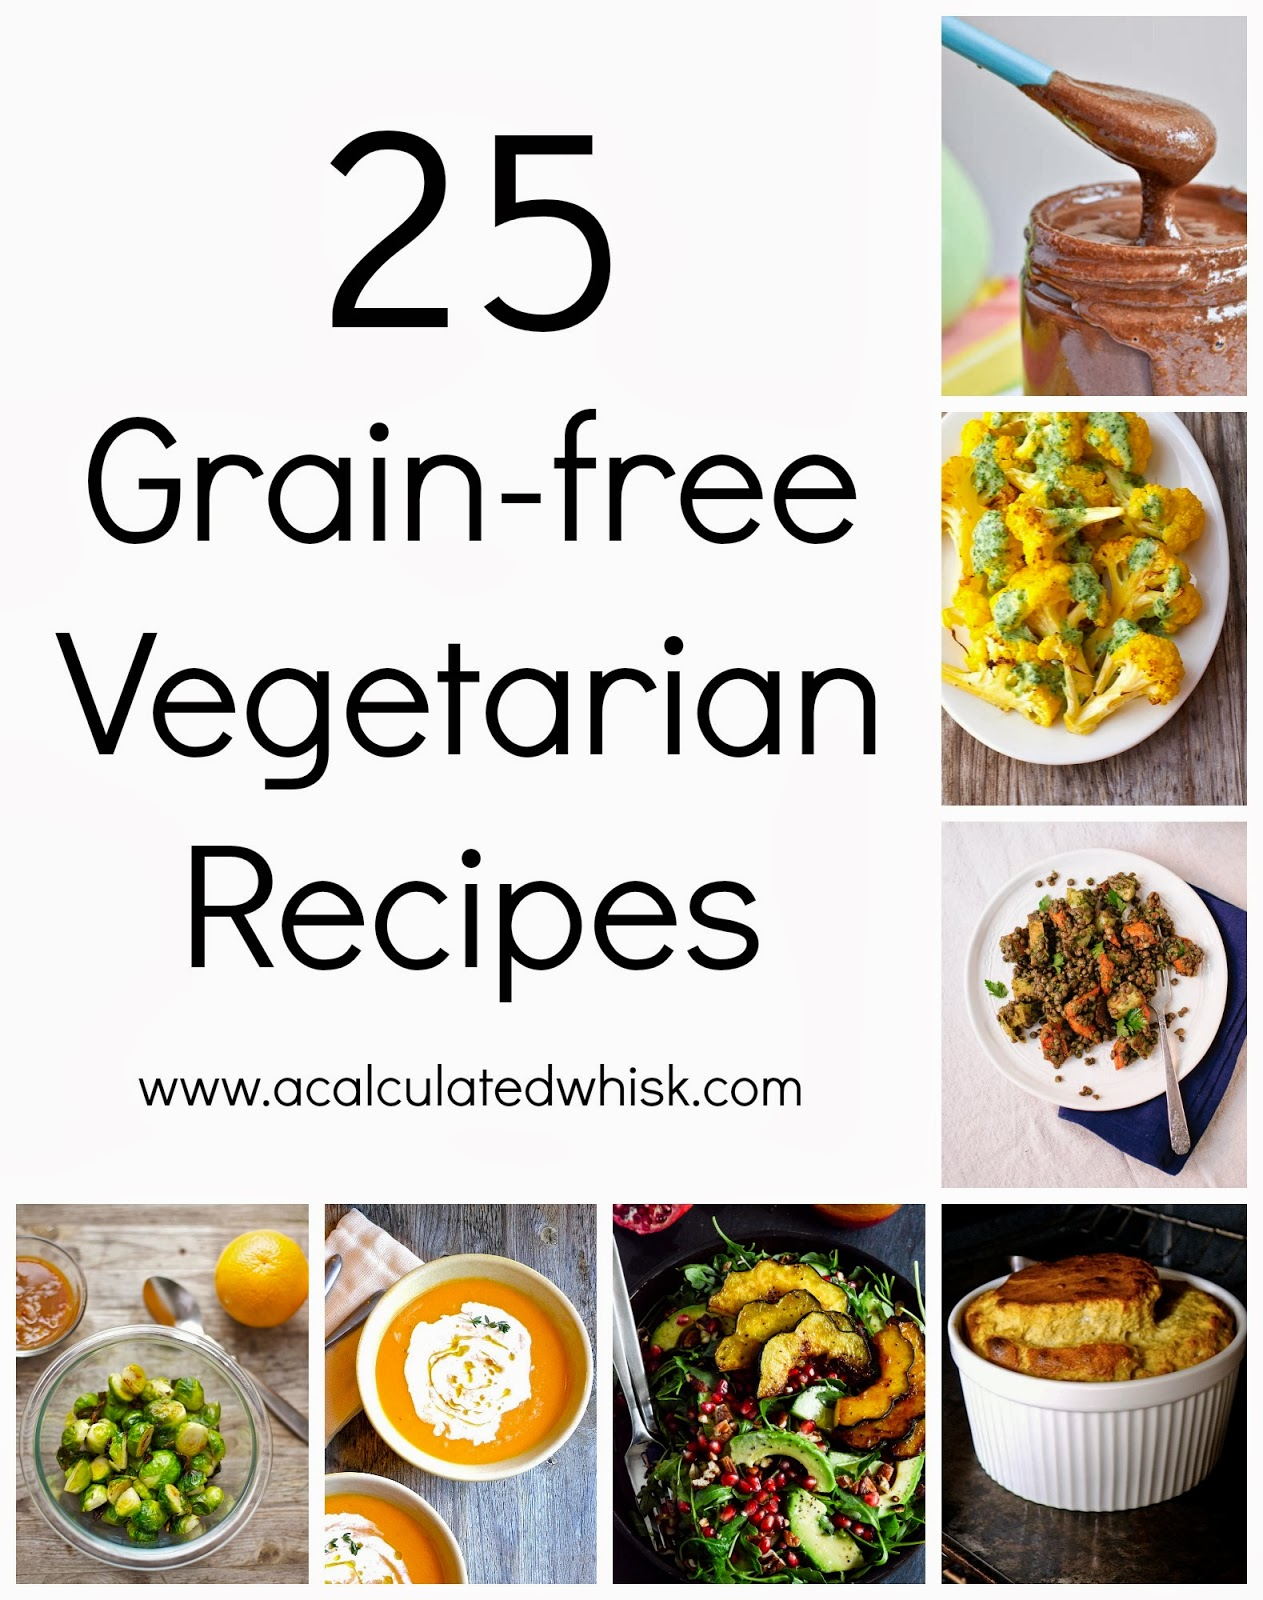 25 Grain-free Vegetarian Recipes - A Calculated Whisk